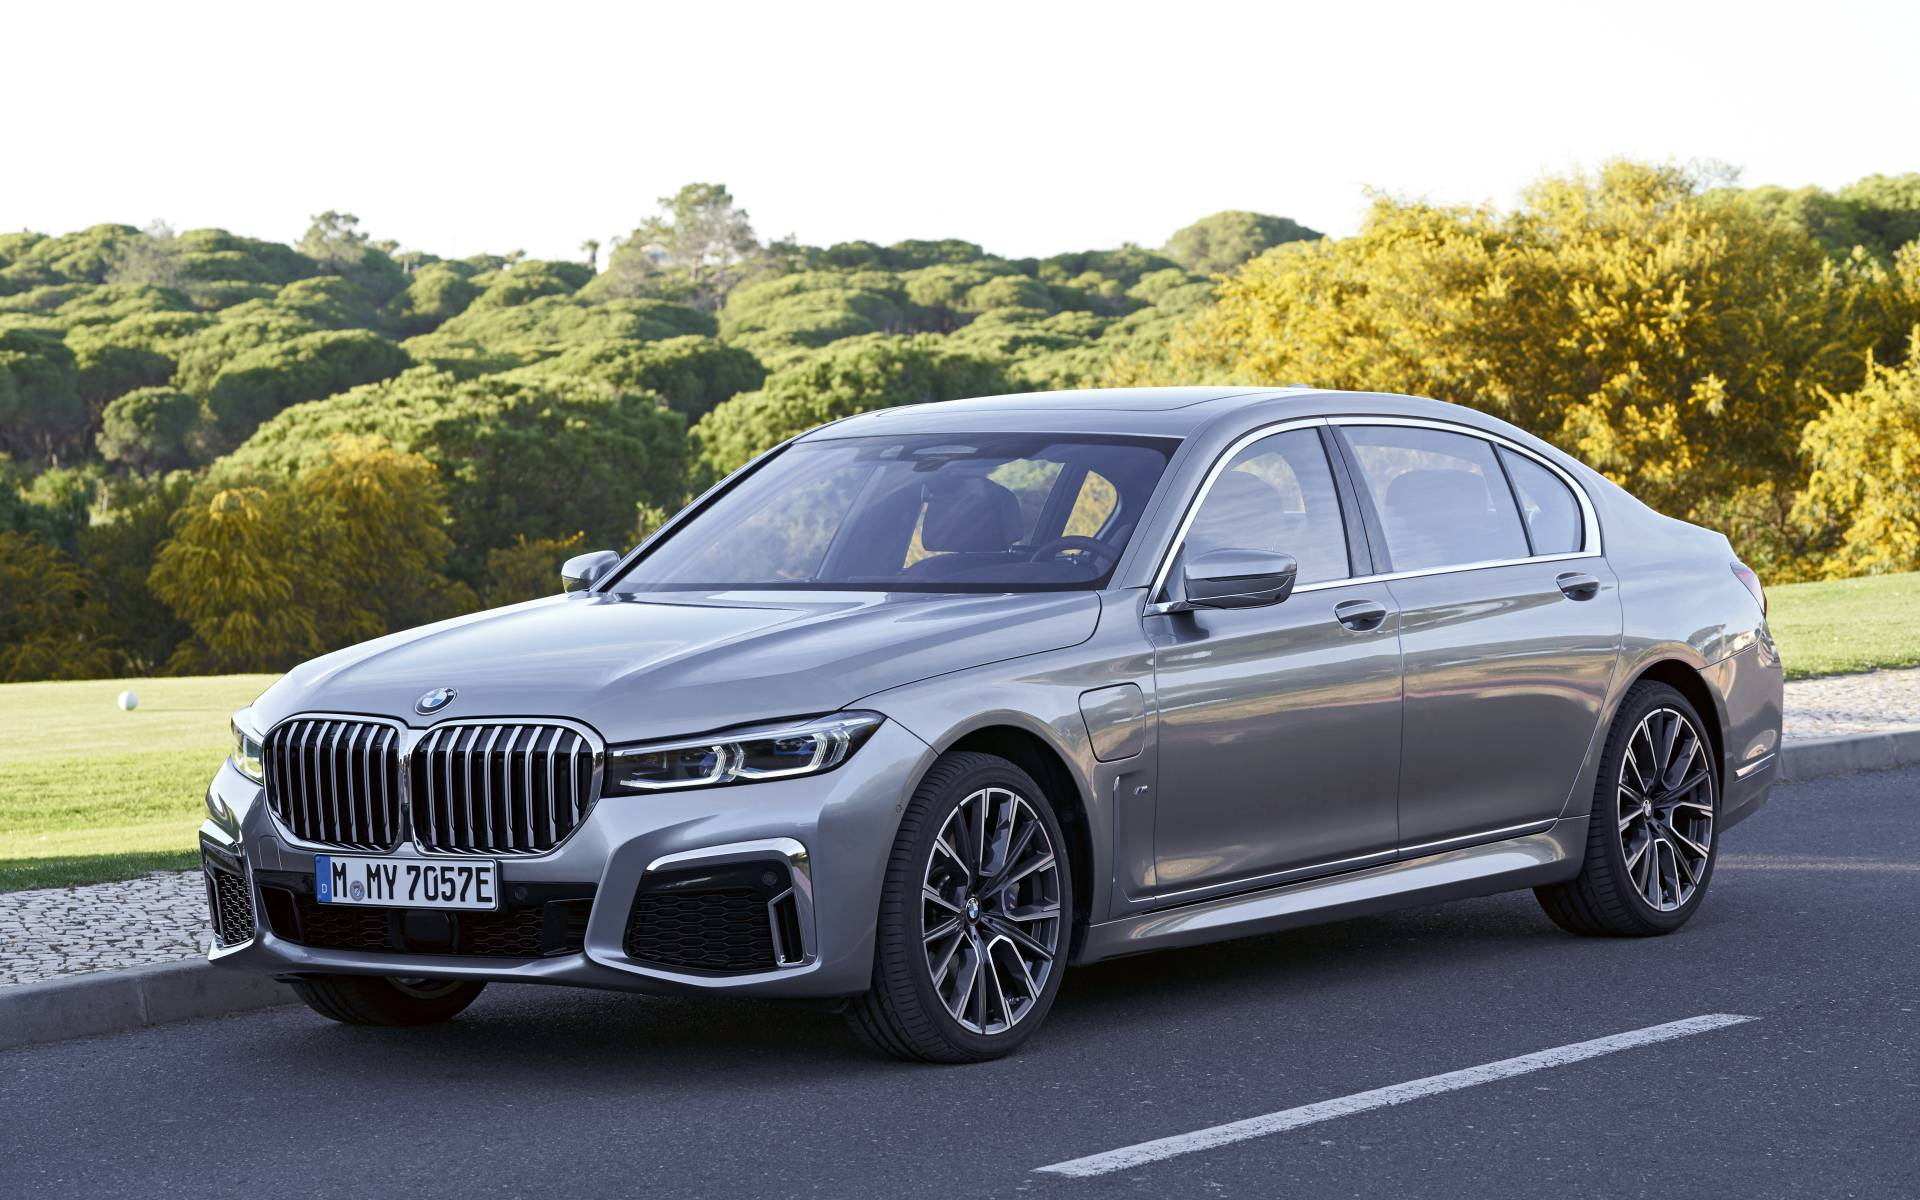 2020 Bmw 7 Series Alpina B7 Specifications The Car Guide